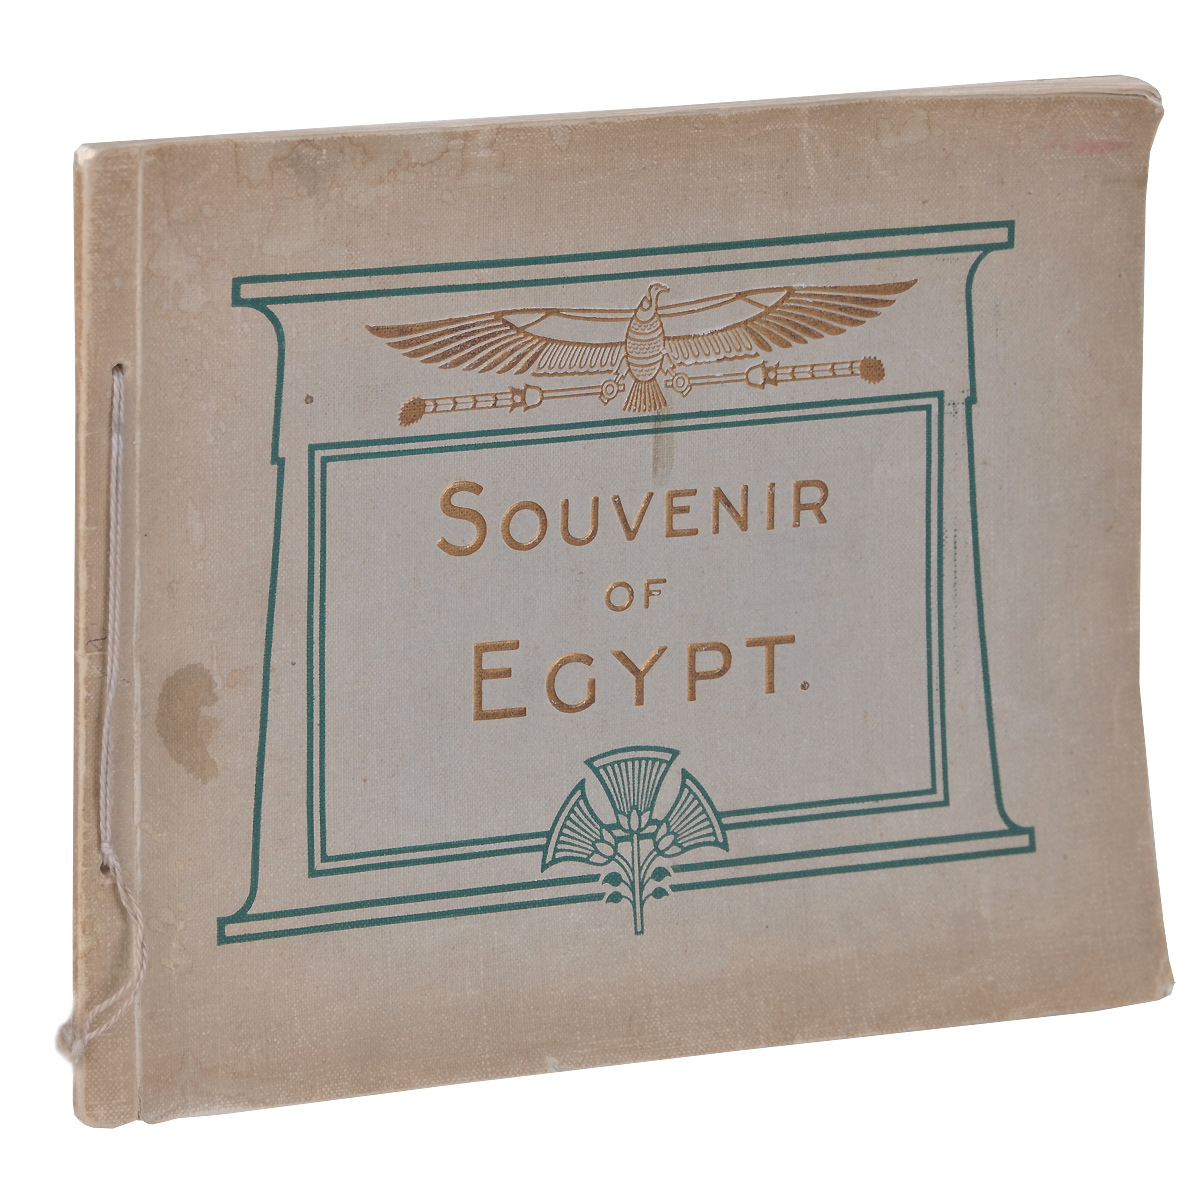 Souvenir of Egypt0120710Лондон, 1920 год. Tillotson Press. Издательский переплет. Сохранена оригинальная обложка. Сохранность хорошая.Album Souvenir of Egypt contains 70 illustrations of Lower and Upper Egypt. Including all the principal views of places of interest on the Nile.Издание не подлежит вывозу за пределы Российской Федерации.